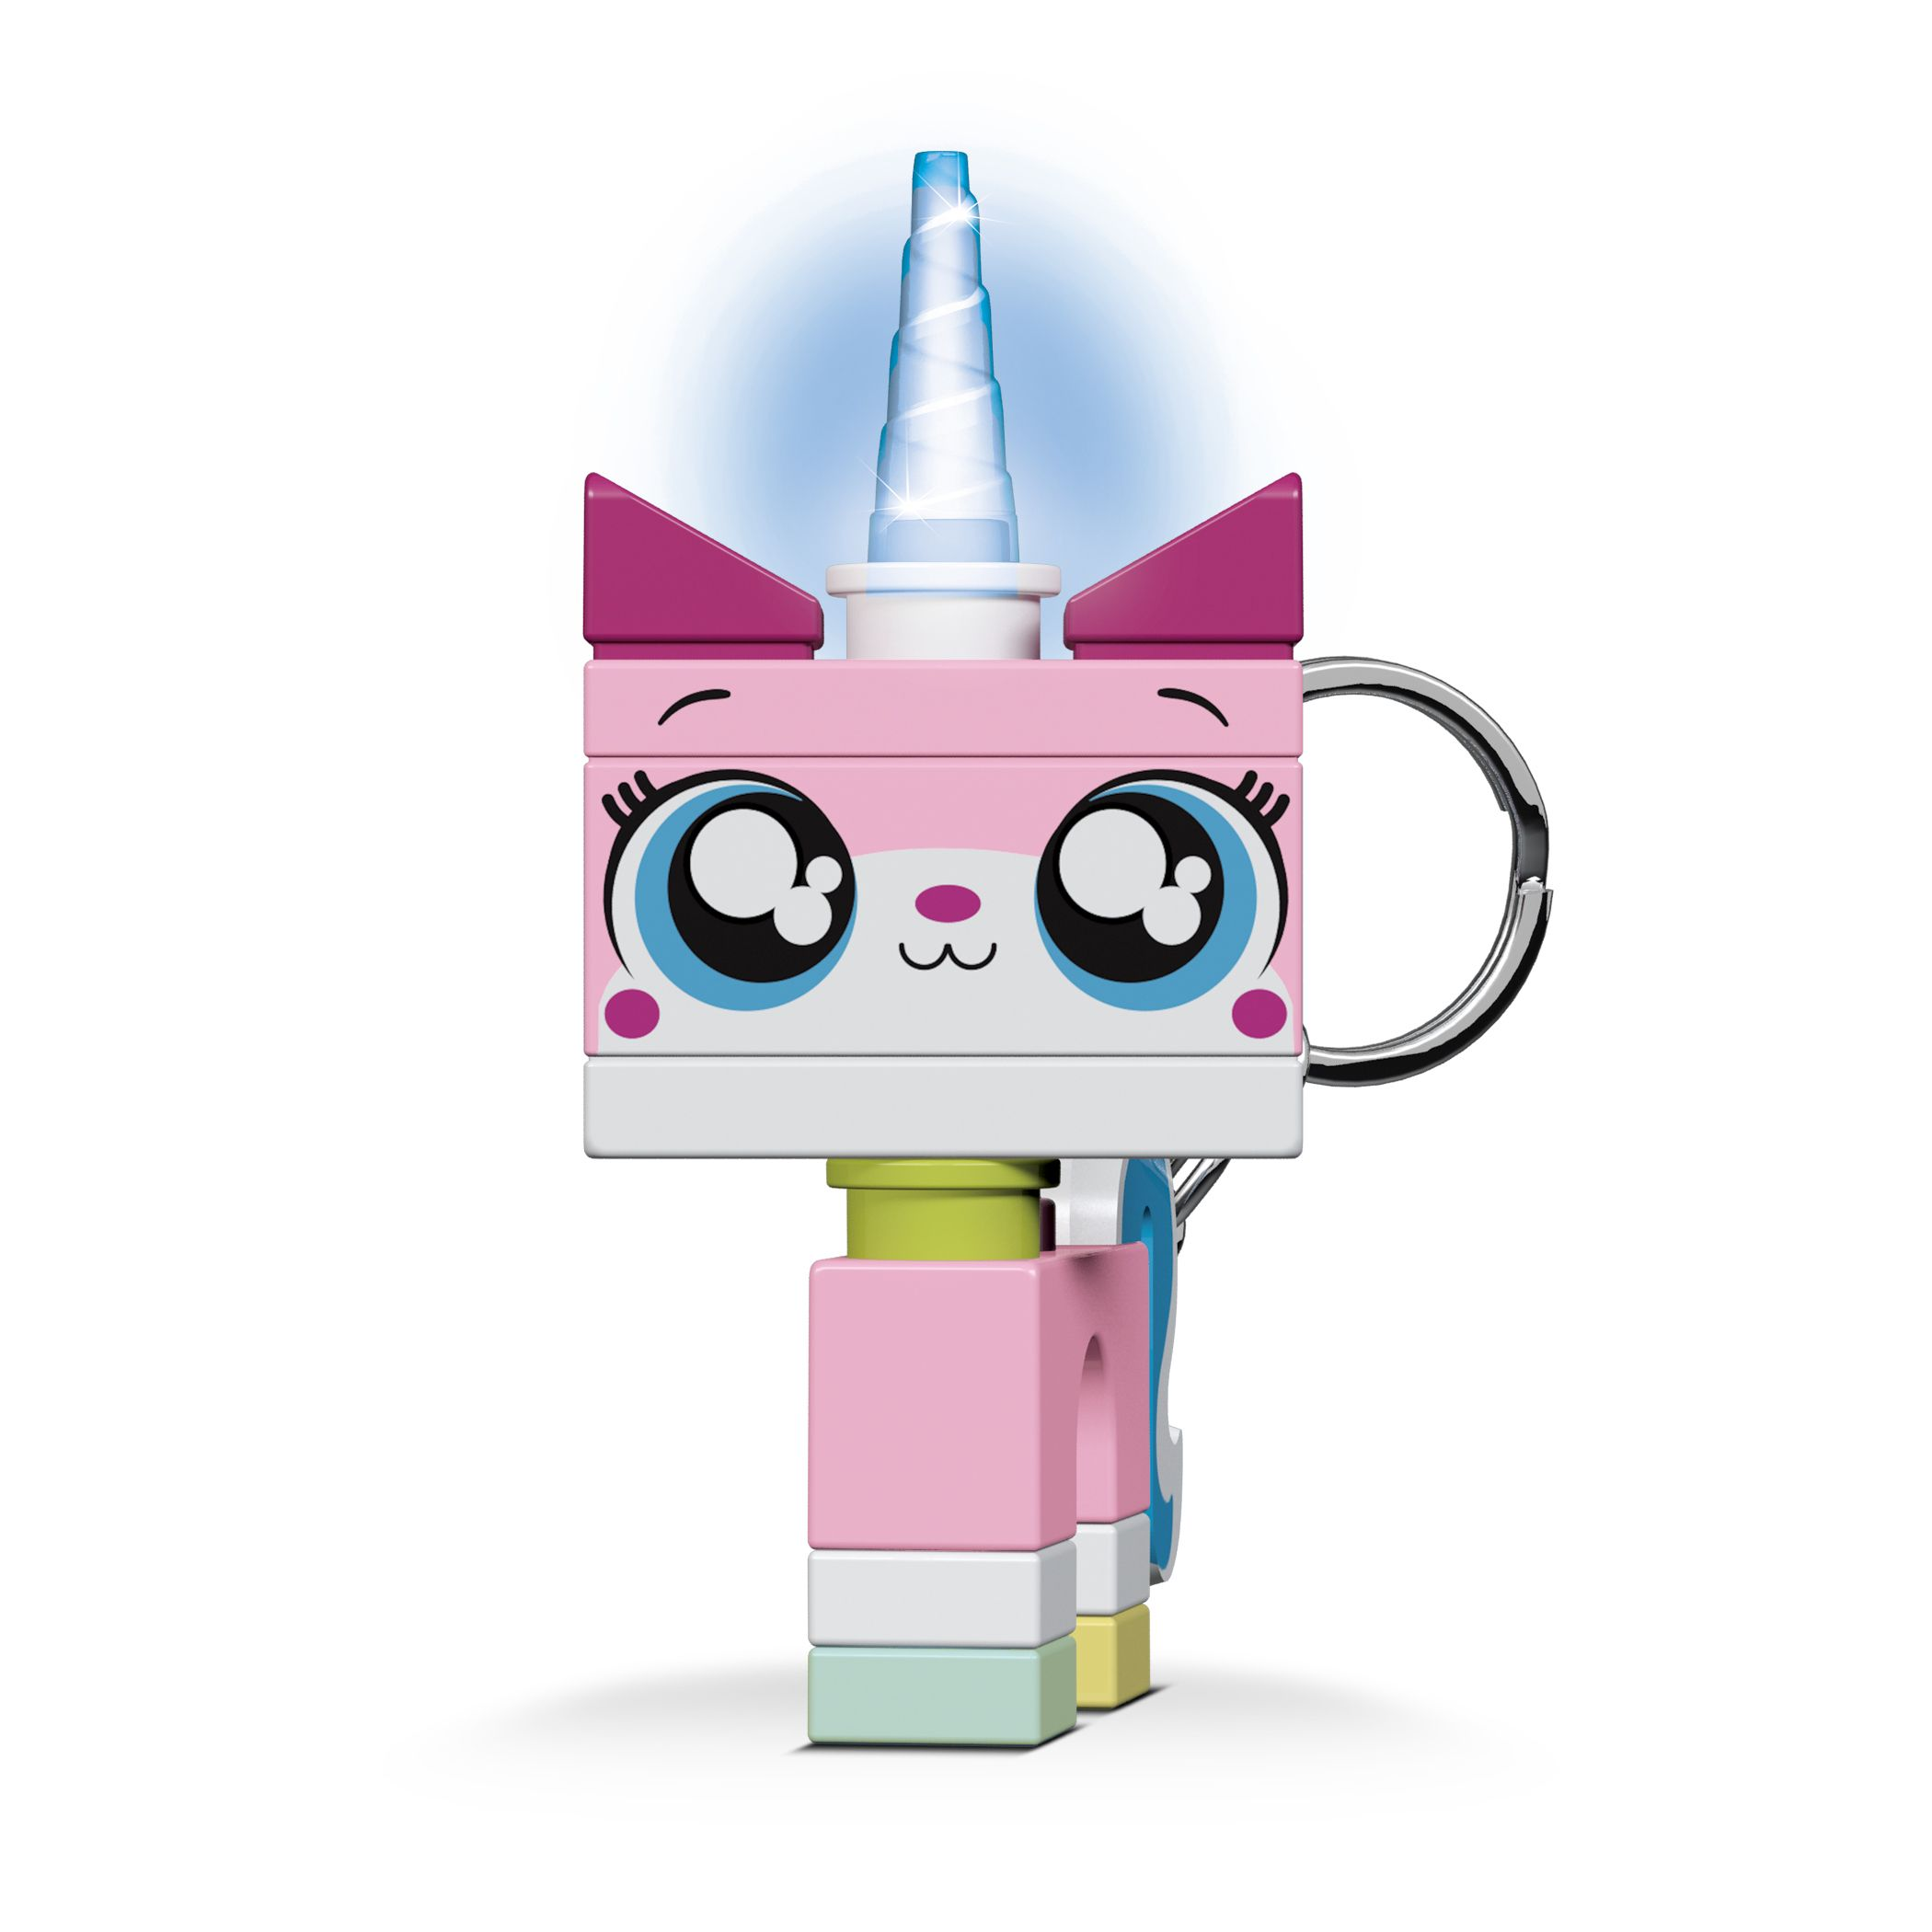 LEGO Gear 5005741 THE LEGO® MOVIE 2™ Einhorn-Kitty-Schlüssellicht LEGO_5005741_alt2.jpg